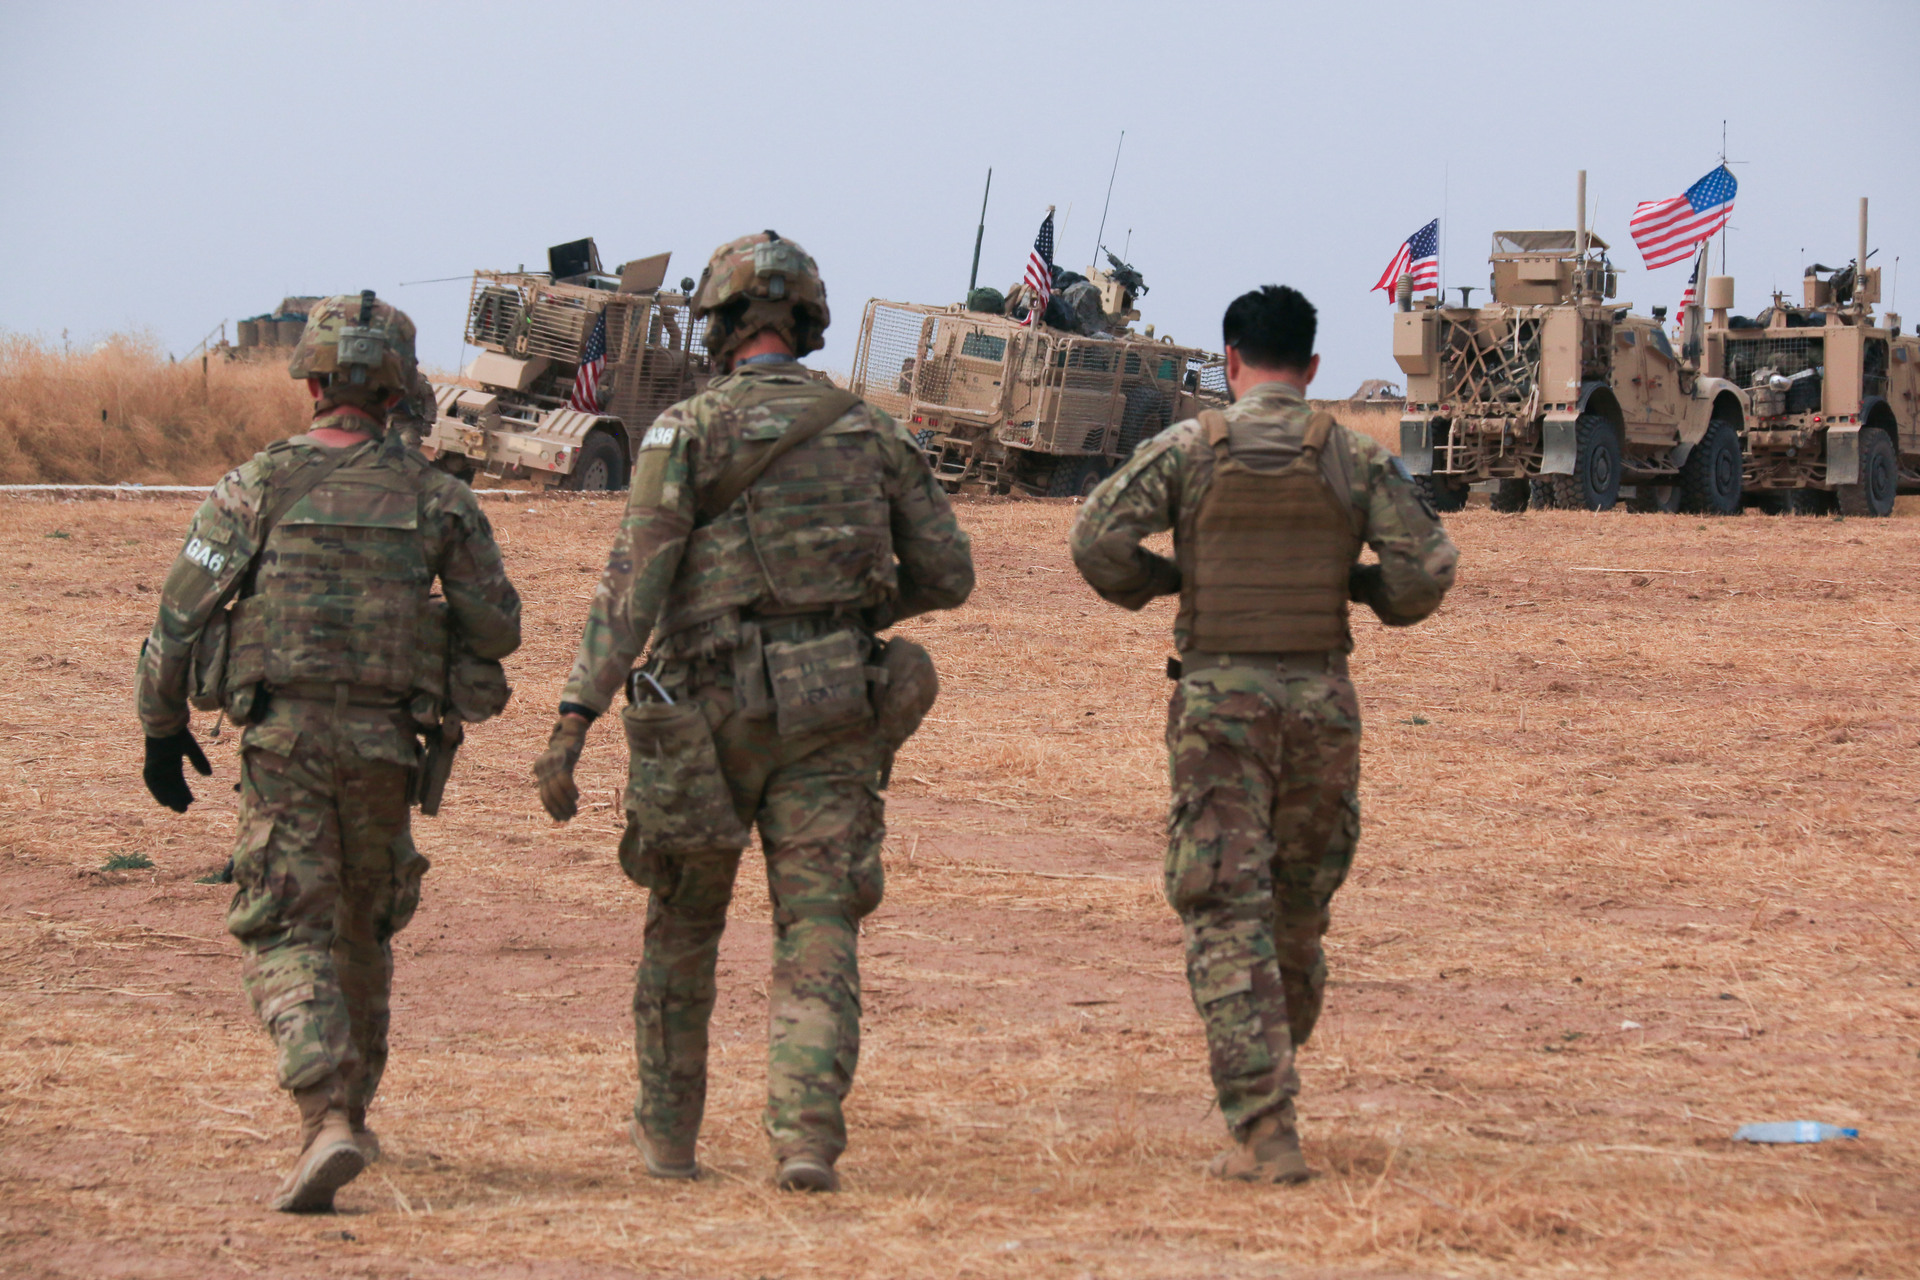 Revealed: US troops pulled out of Syria going to Iraq, not home